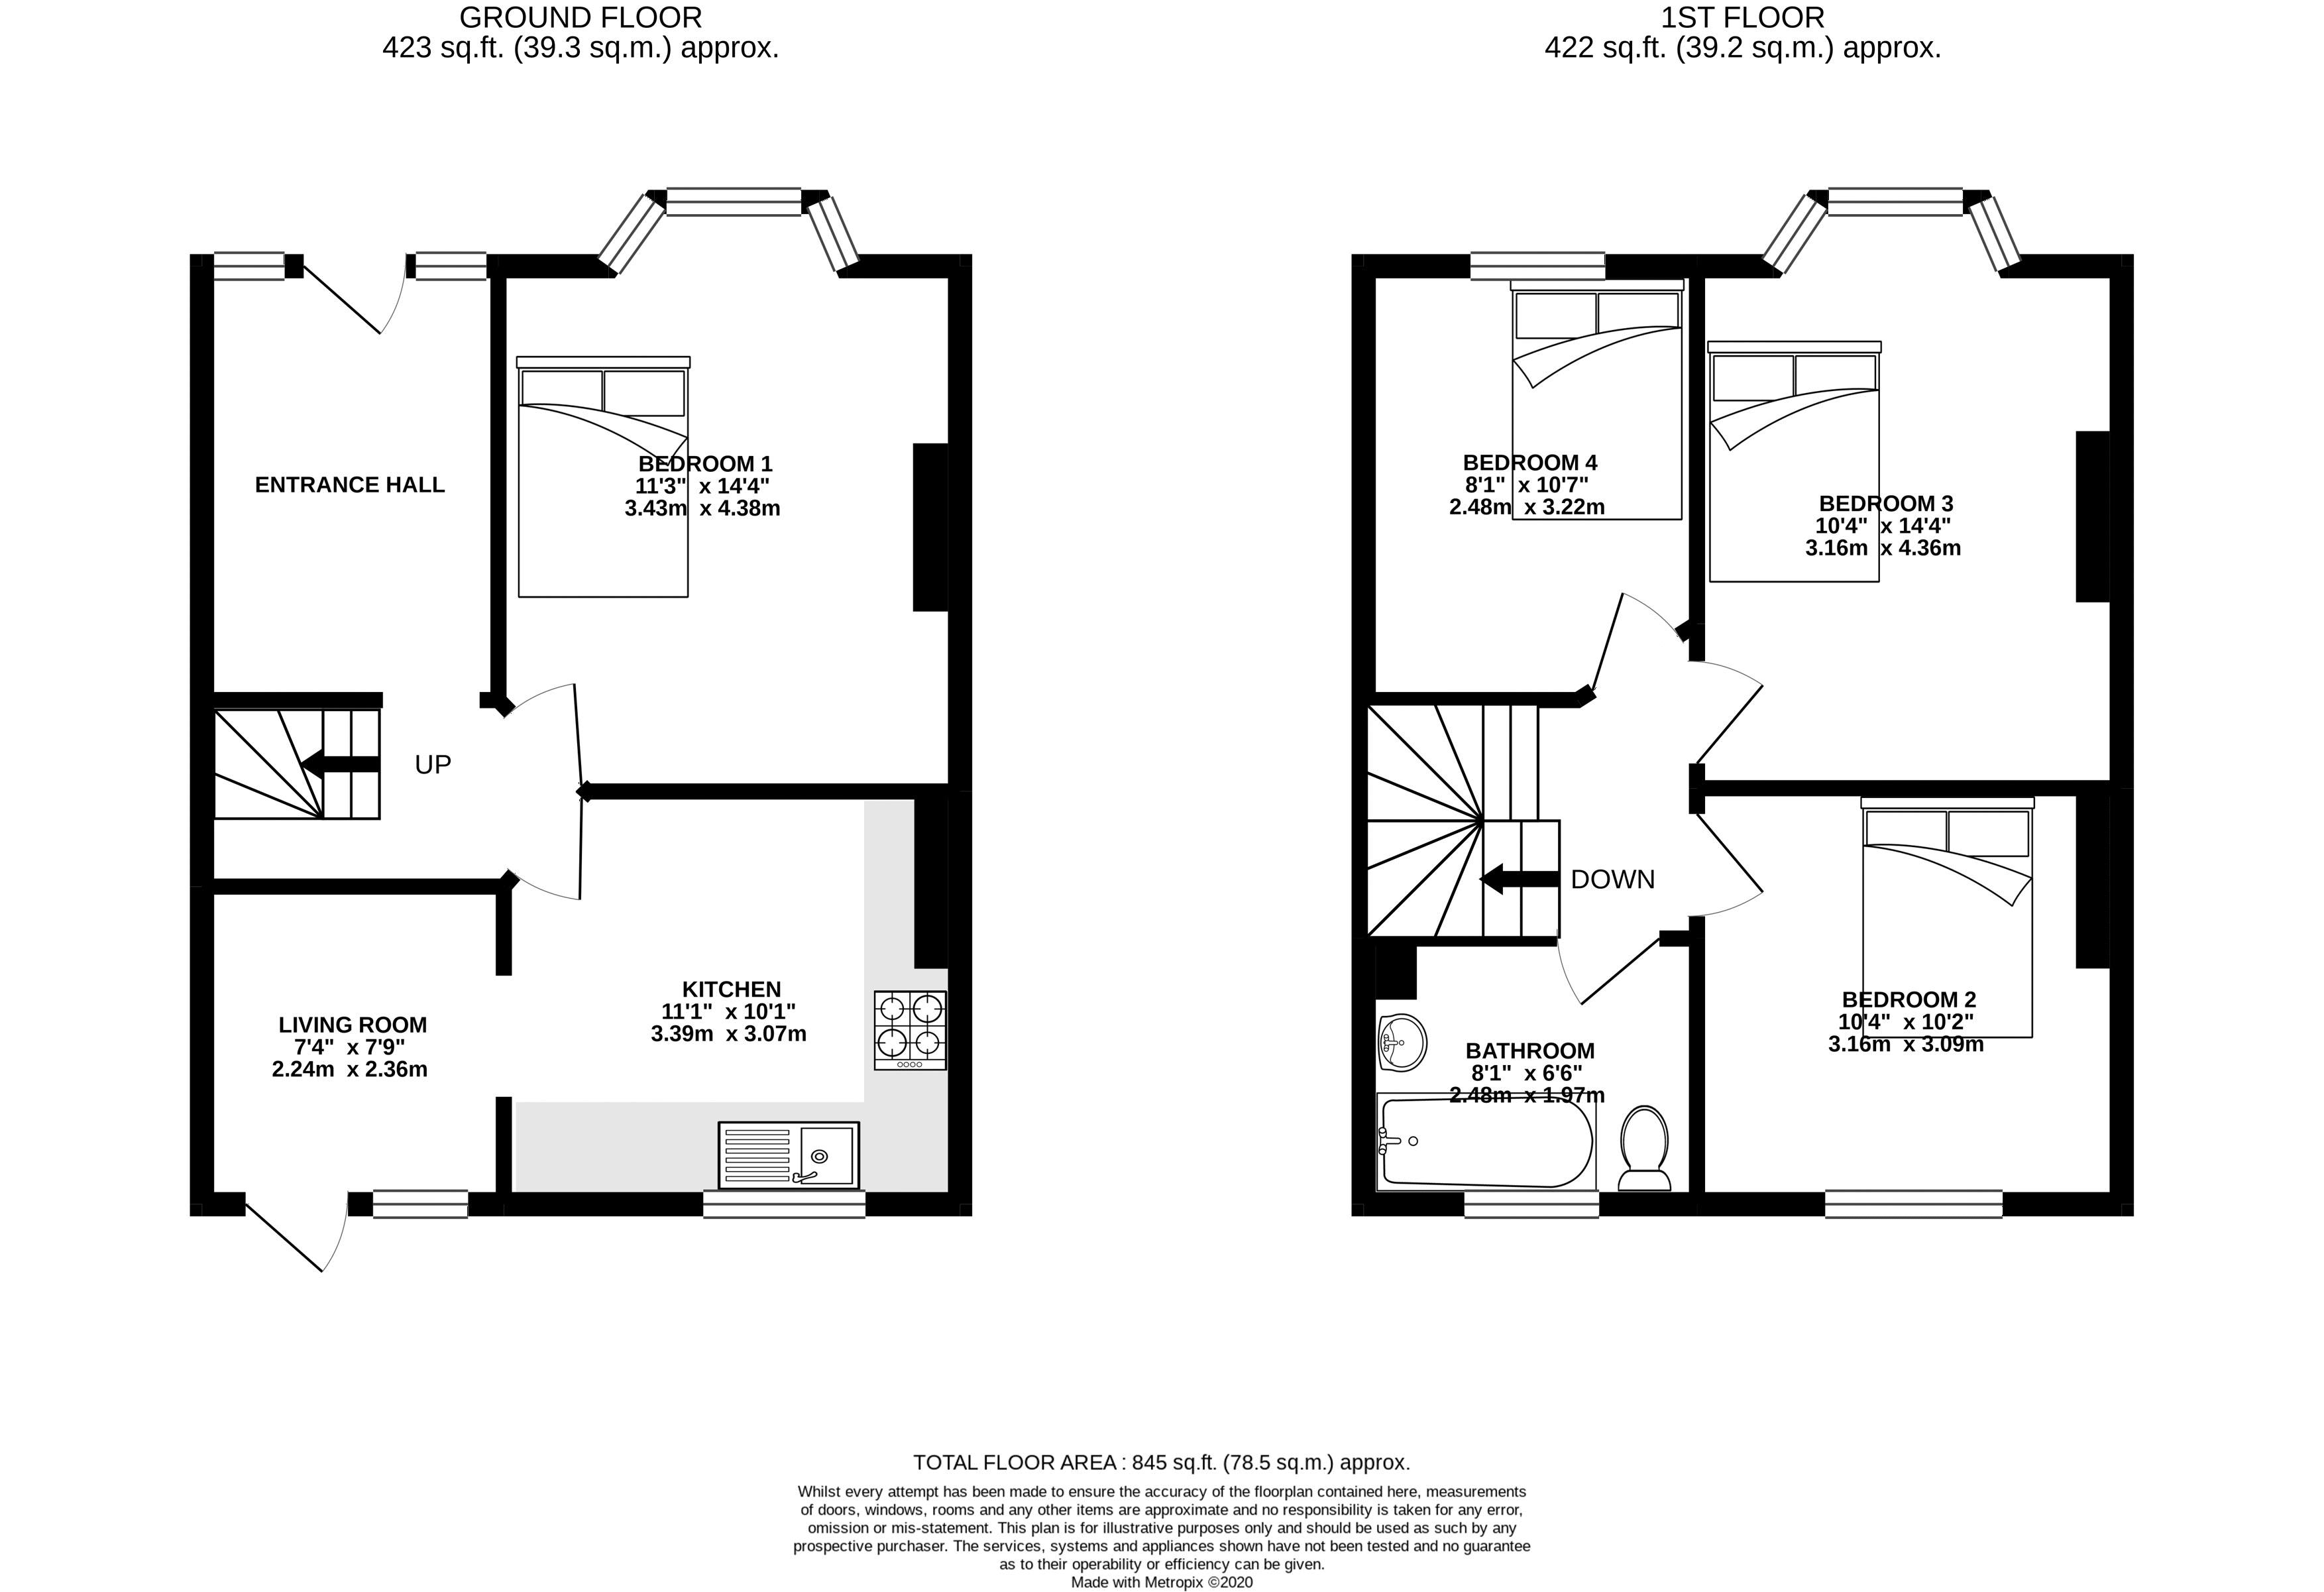 Floor plans for Ladysmith Road, Brighton property for sale in Coombe Road, Brighton by Coapt